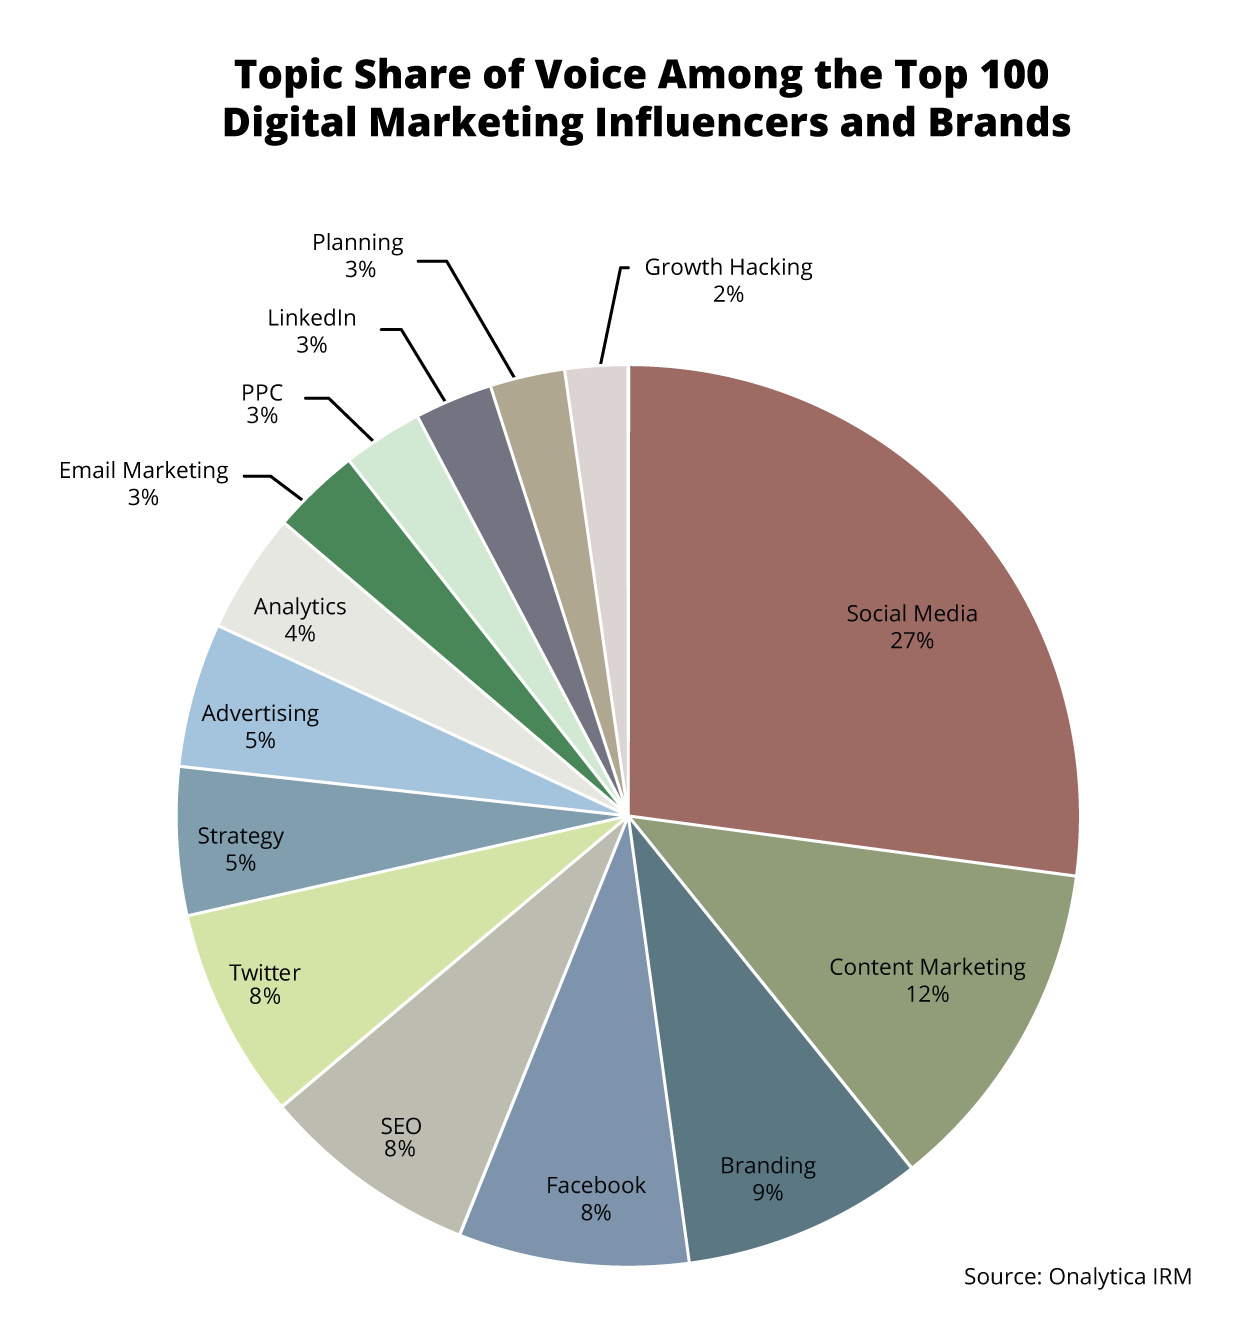 Onalytica Digital Marketing Top 100 Influencers and Brands - Topic Share of Voice Among the Top 100 Digital Marketing Influencers and Brands